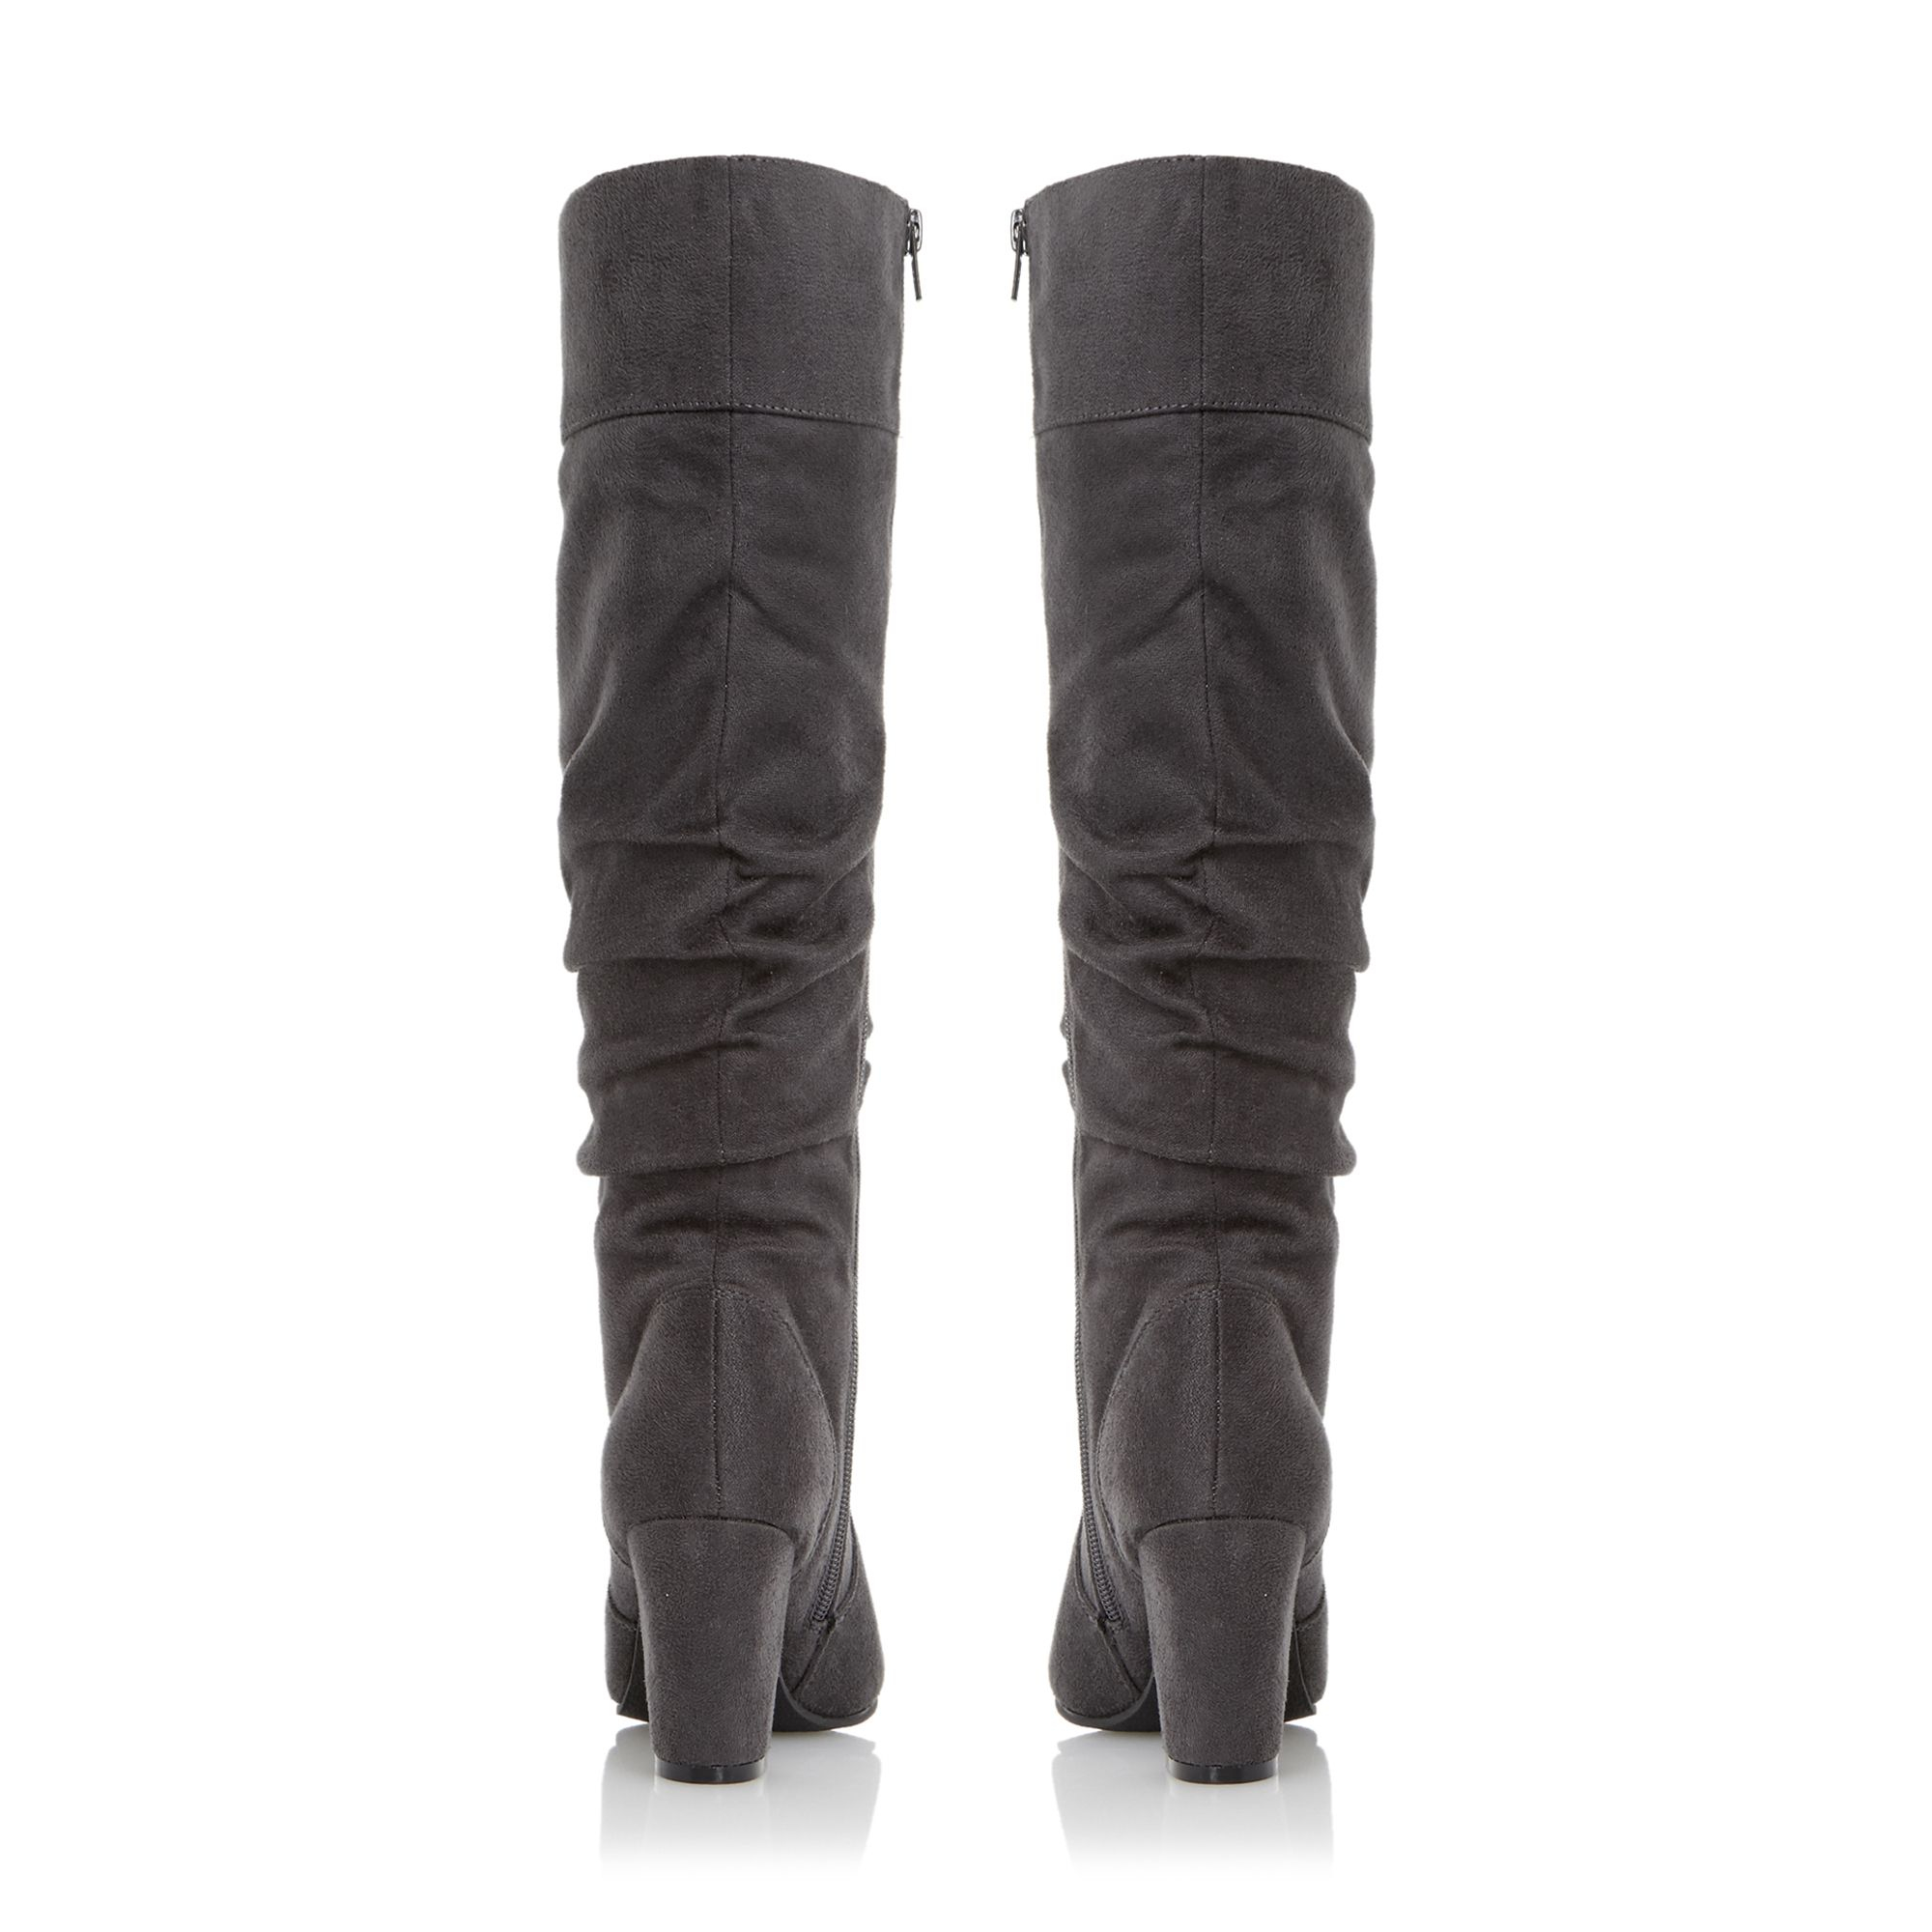 Dune Sadira Ruched Dressy Knee High Boots in Gray | Lyst